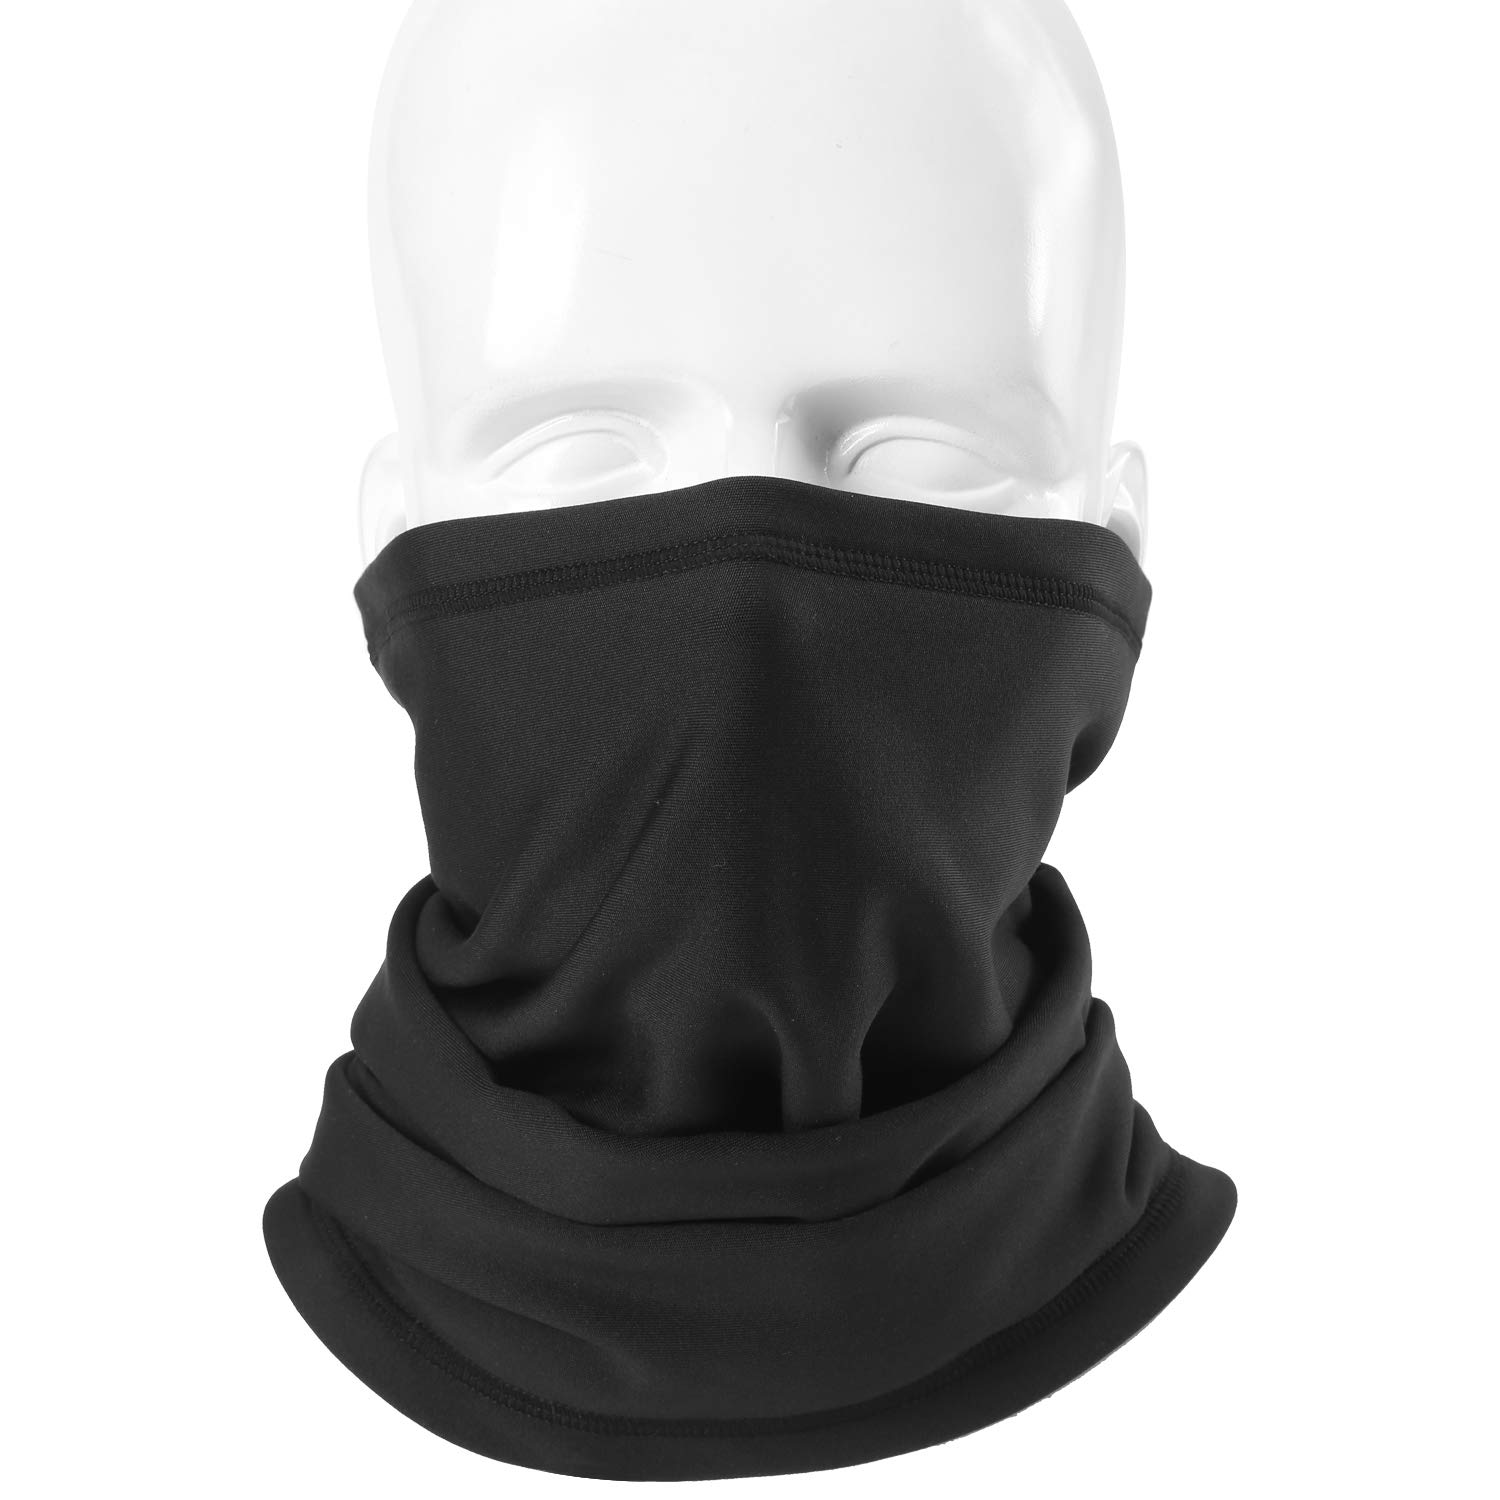 aa4987b9b9f Amazon.com  JIUSY 1 Pack - Windproof Thermal Fleece Neck Gaiter Neck Warmer  Cover Face Mask UV Protection for Snowboard Skiing Cycling Motorcycle  Hunting ...